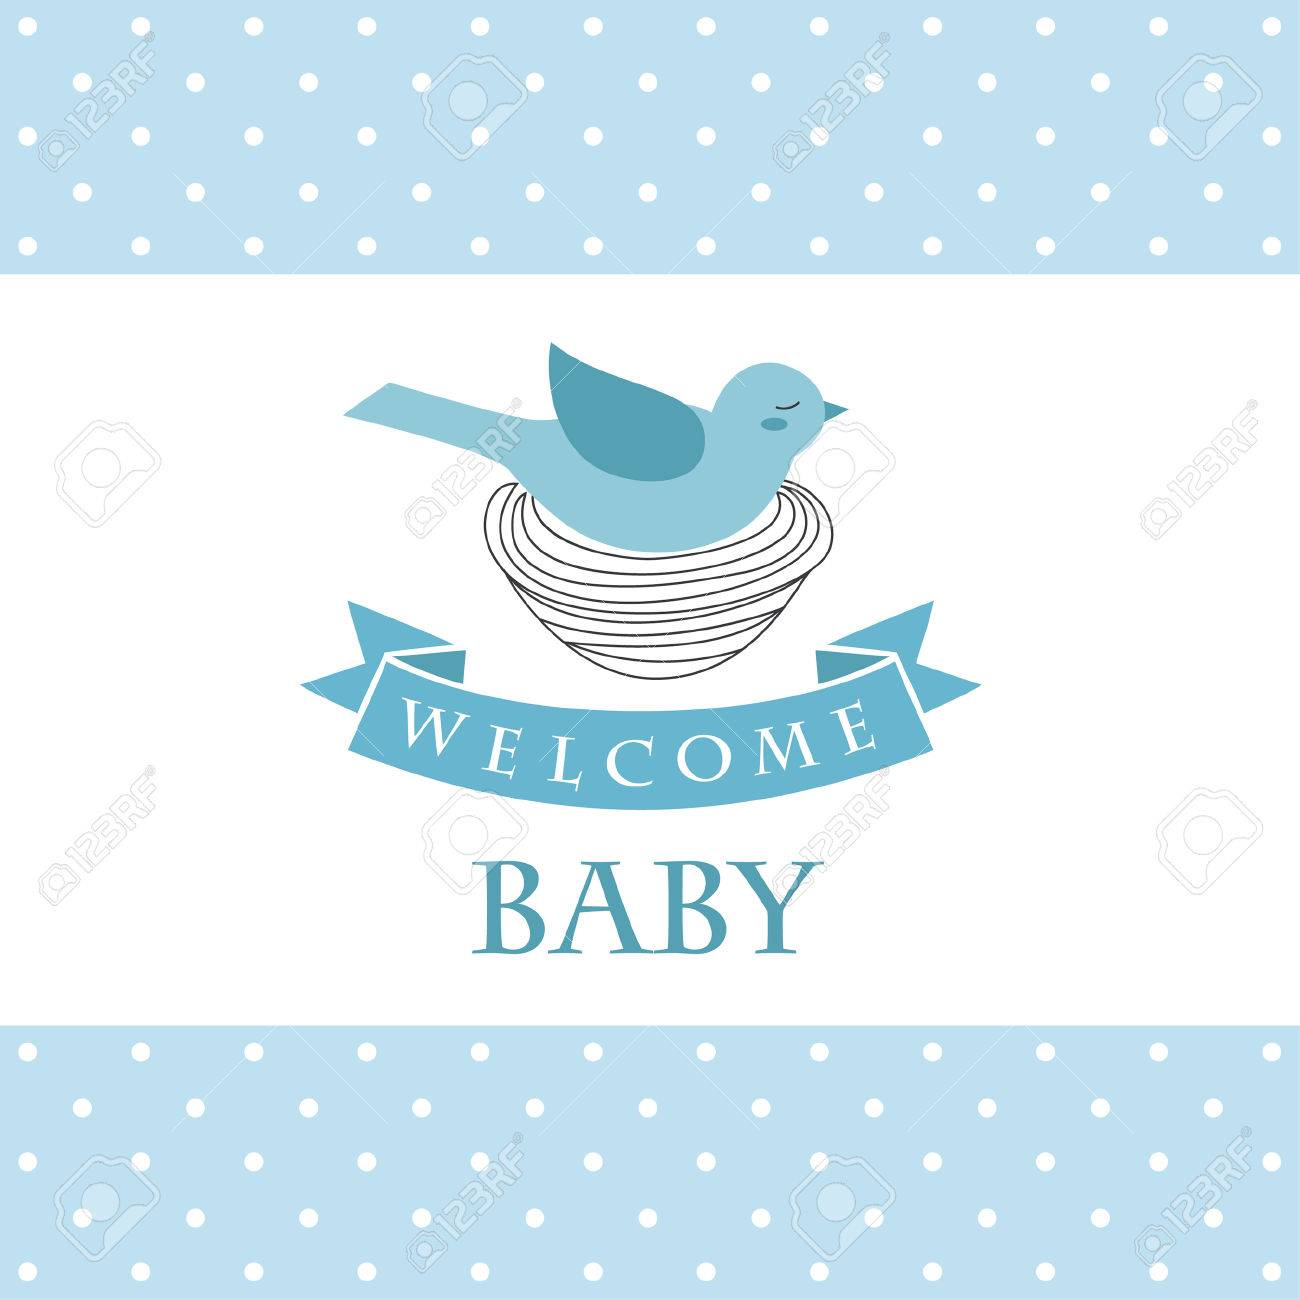 Welcome Baby Card Design. Vector Illustration Royalty Free ...